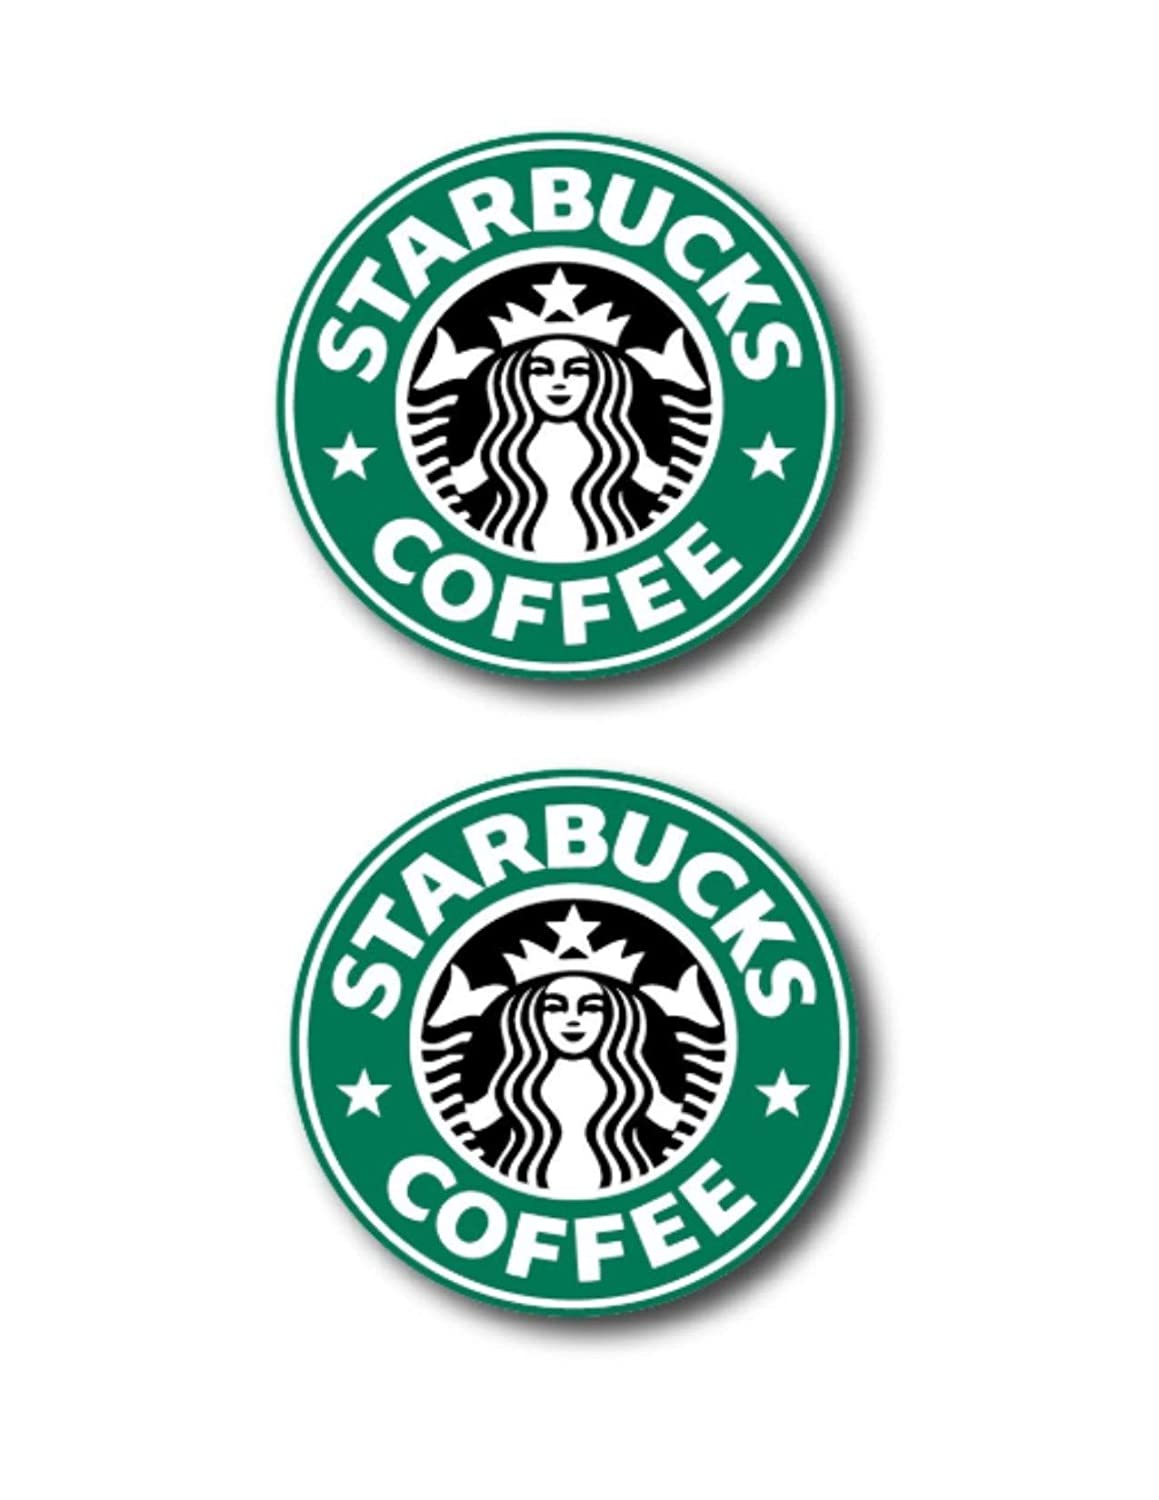 Amazon com 3 starbucks logo decal sticker for case car laptop phone bumper etc computers accessories